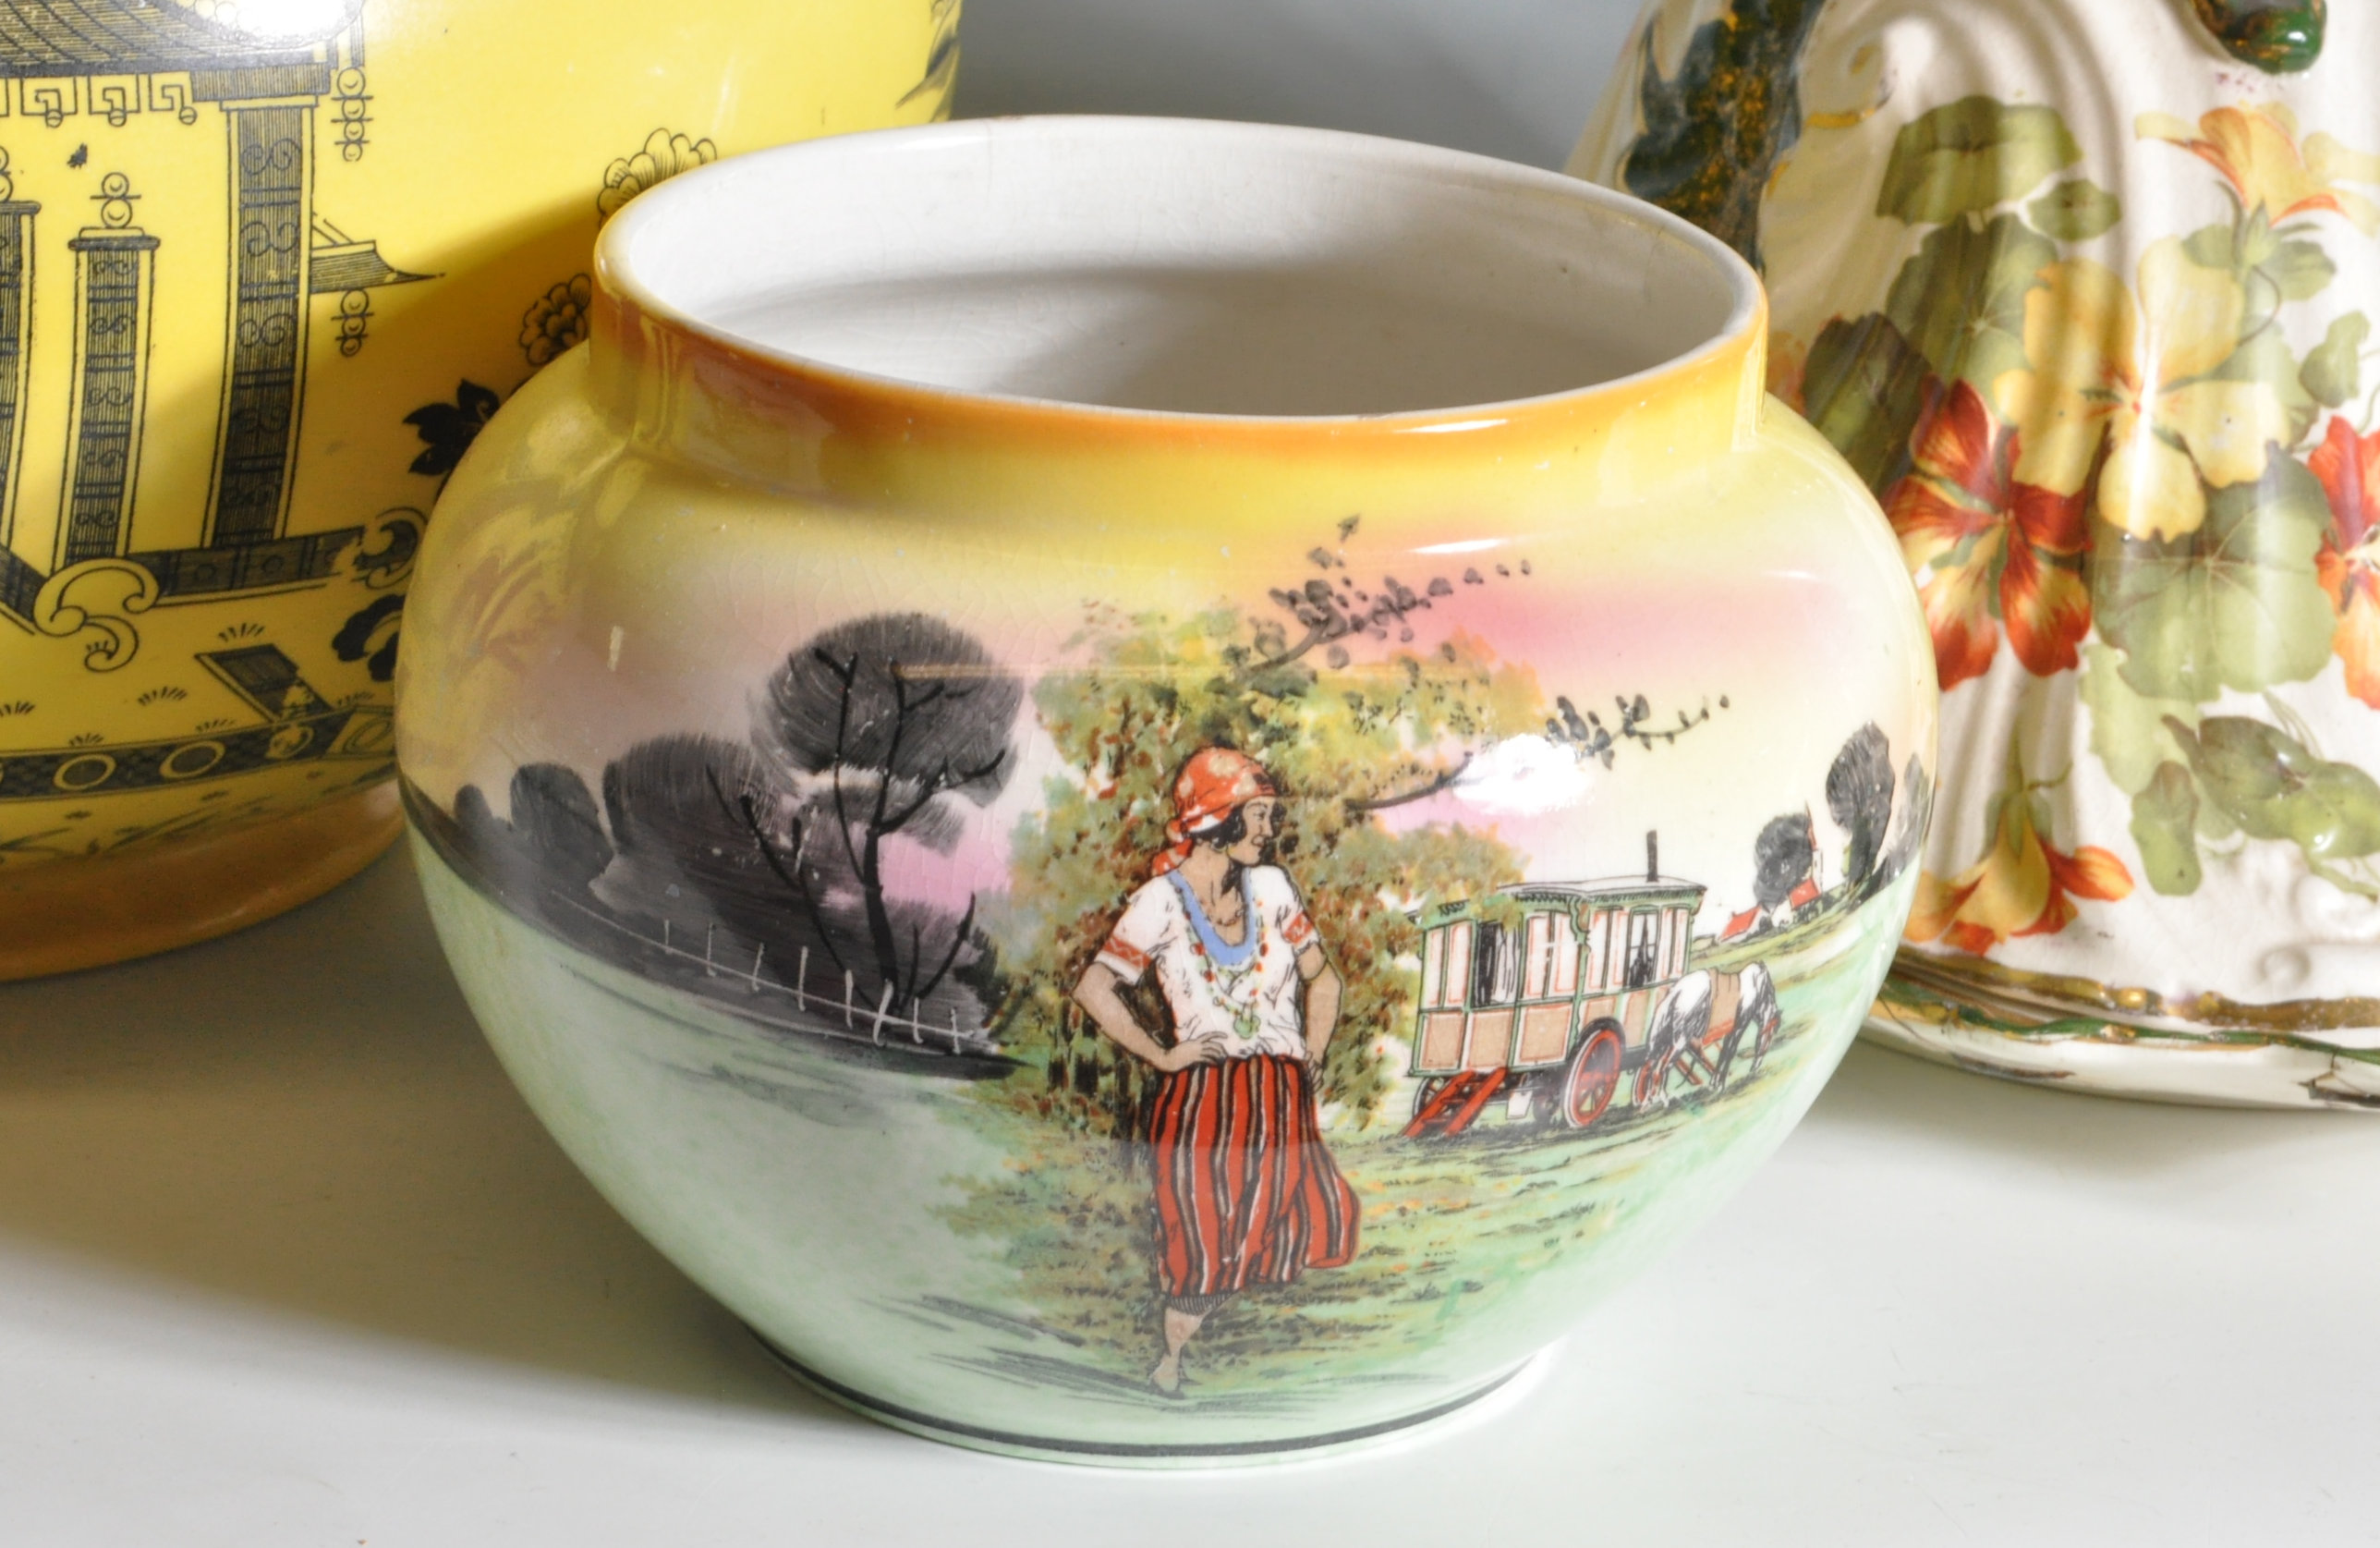 COLLECTION OF VINTAGE 20TH CENTURY CERAMICS - Image 2 of 10